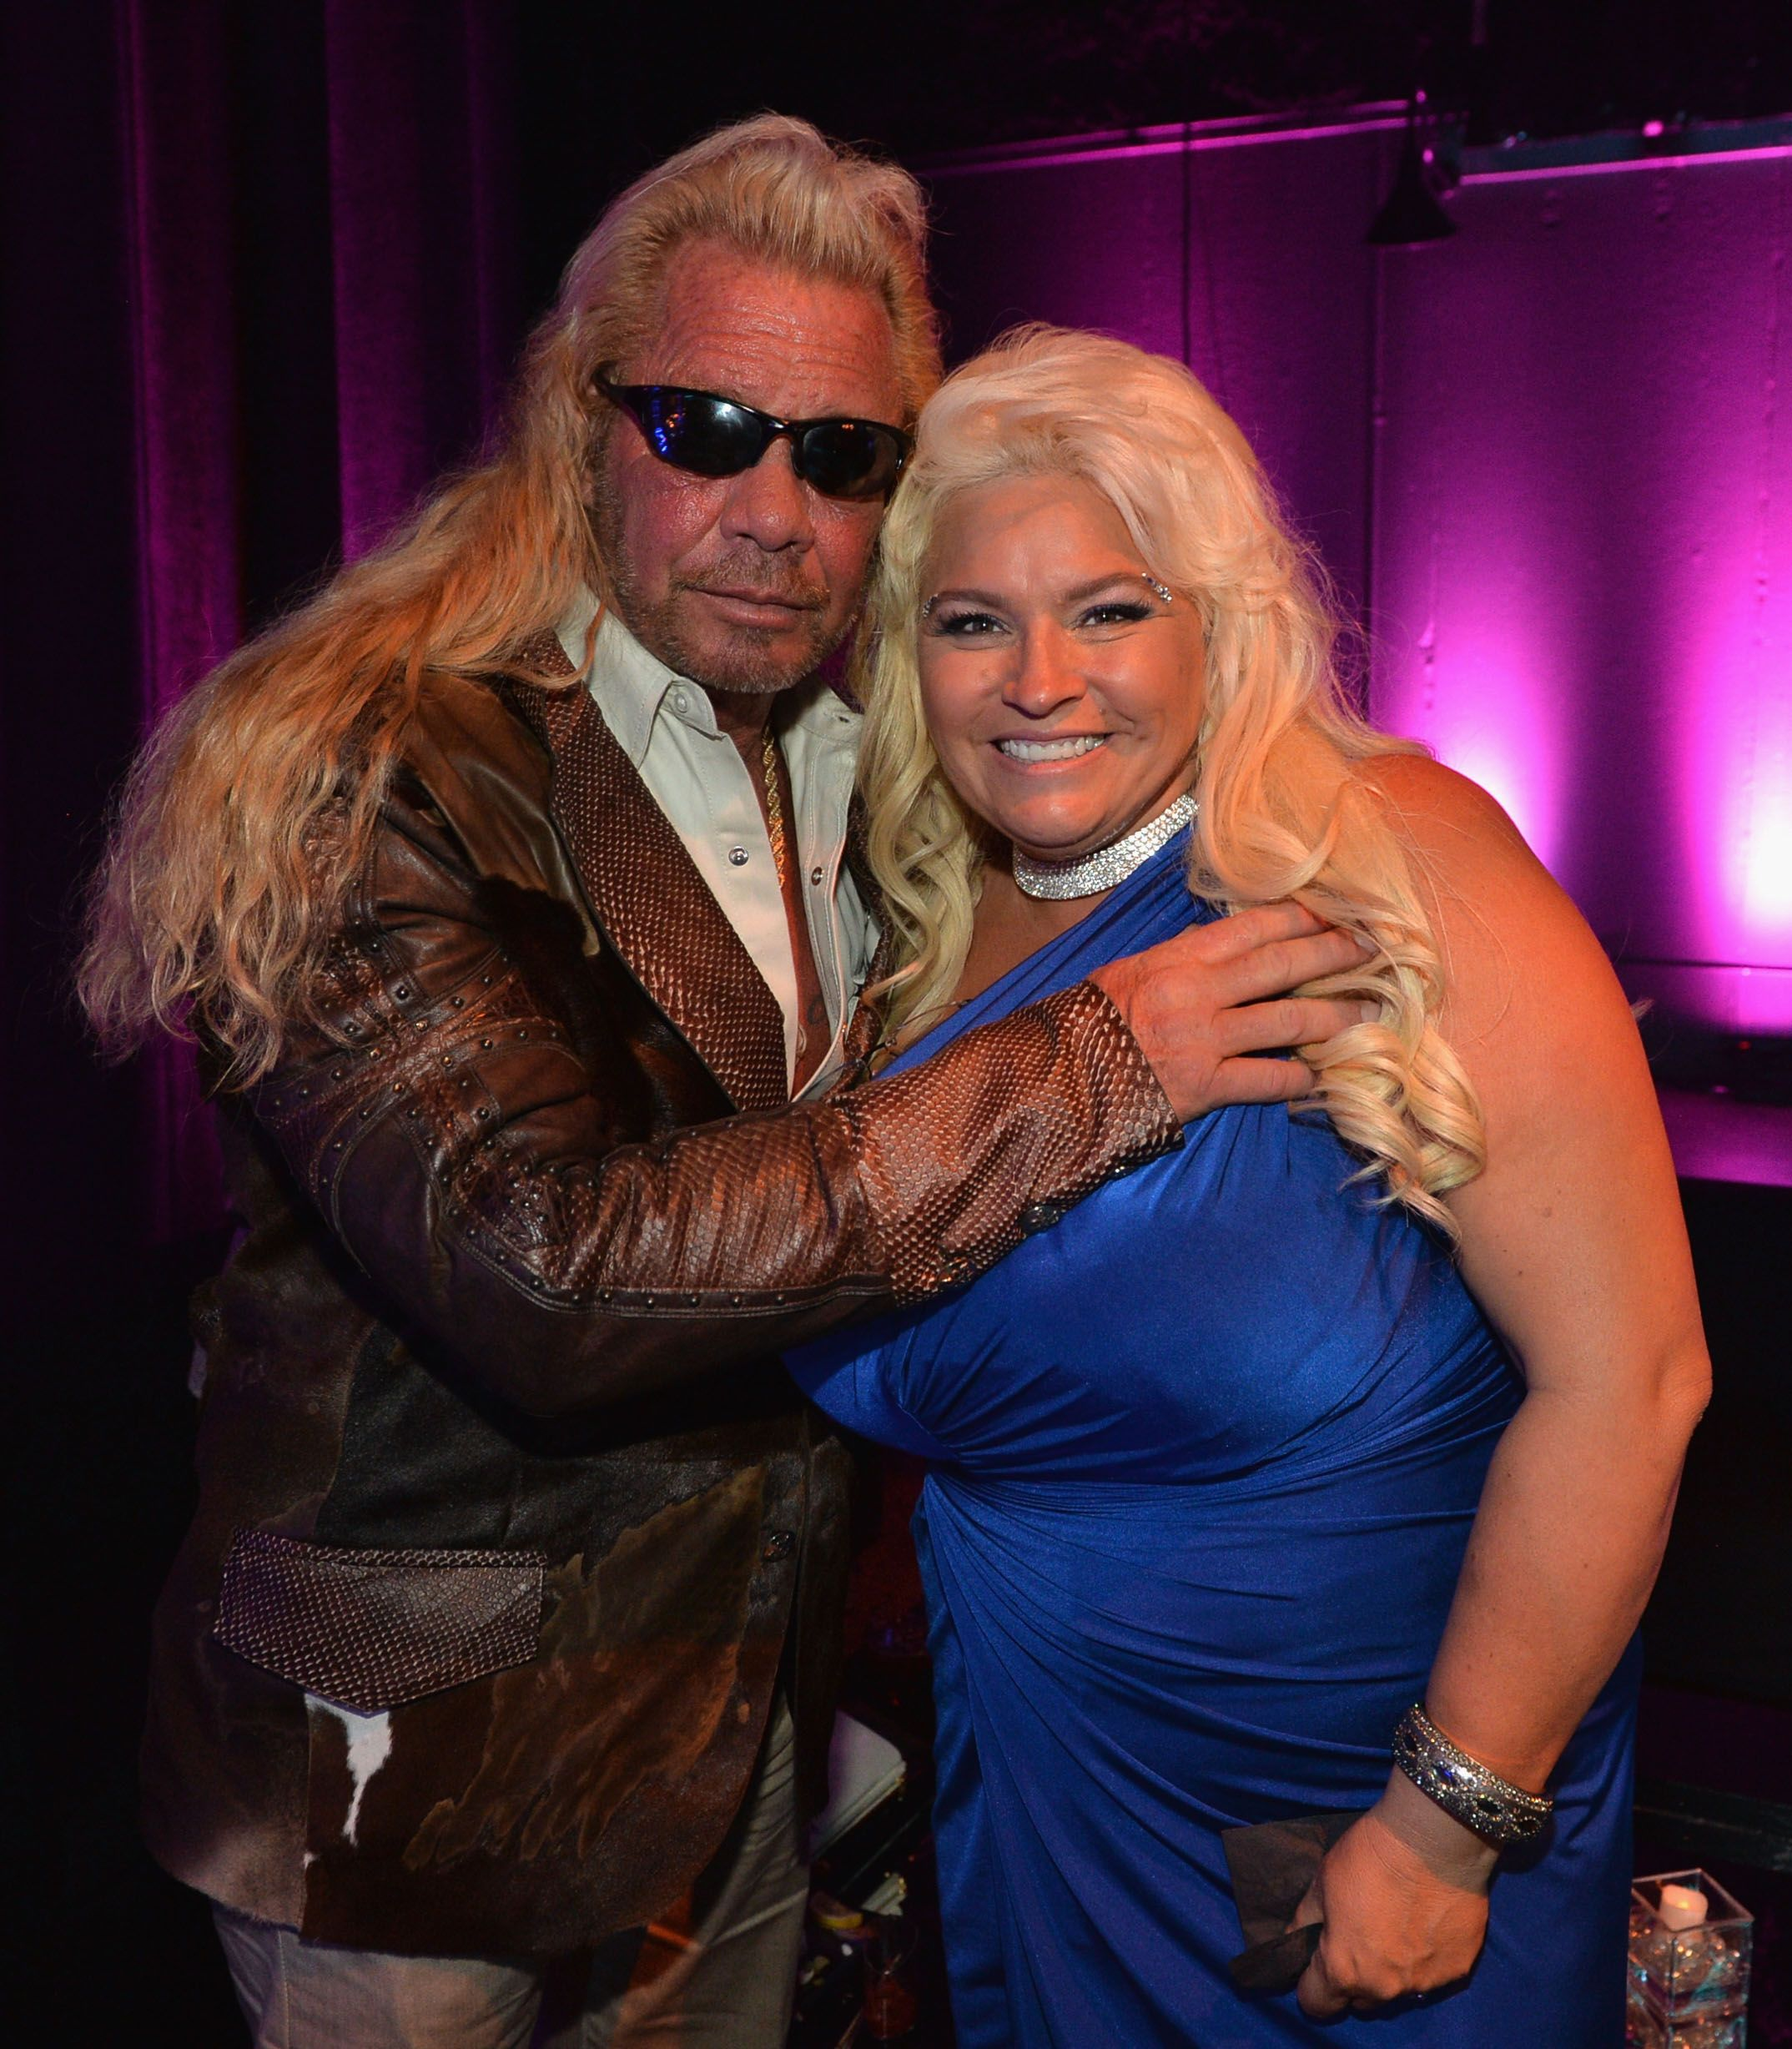 Duane Dog Lee Chapman and Late Beth Chapman attend the 2013 CMT Music Awards - After Party at Rocketown on June 5, 2013 in Nashville, Tennessee. | Photo: Getty Images